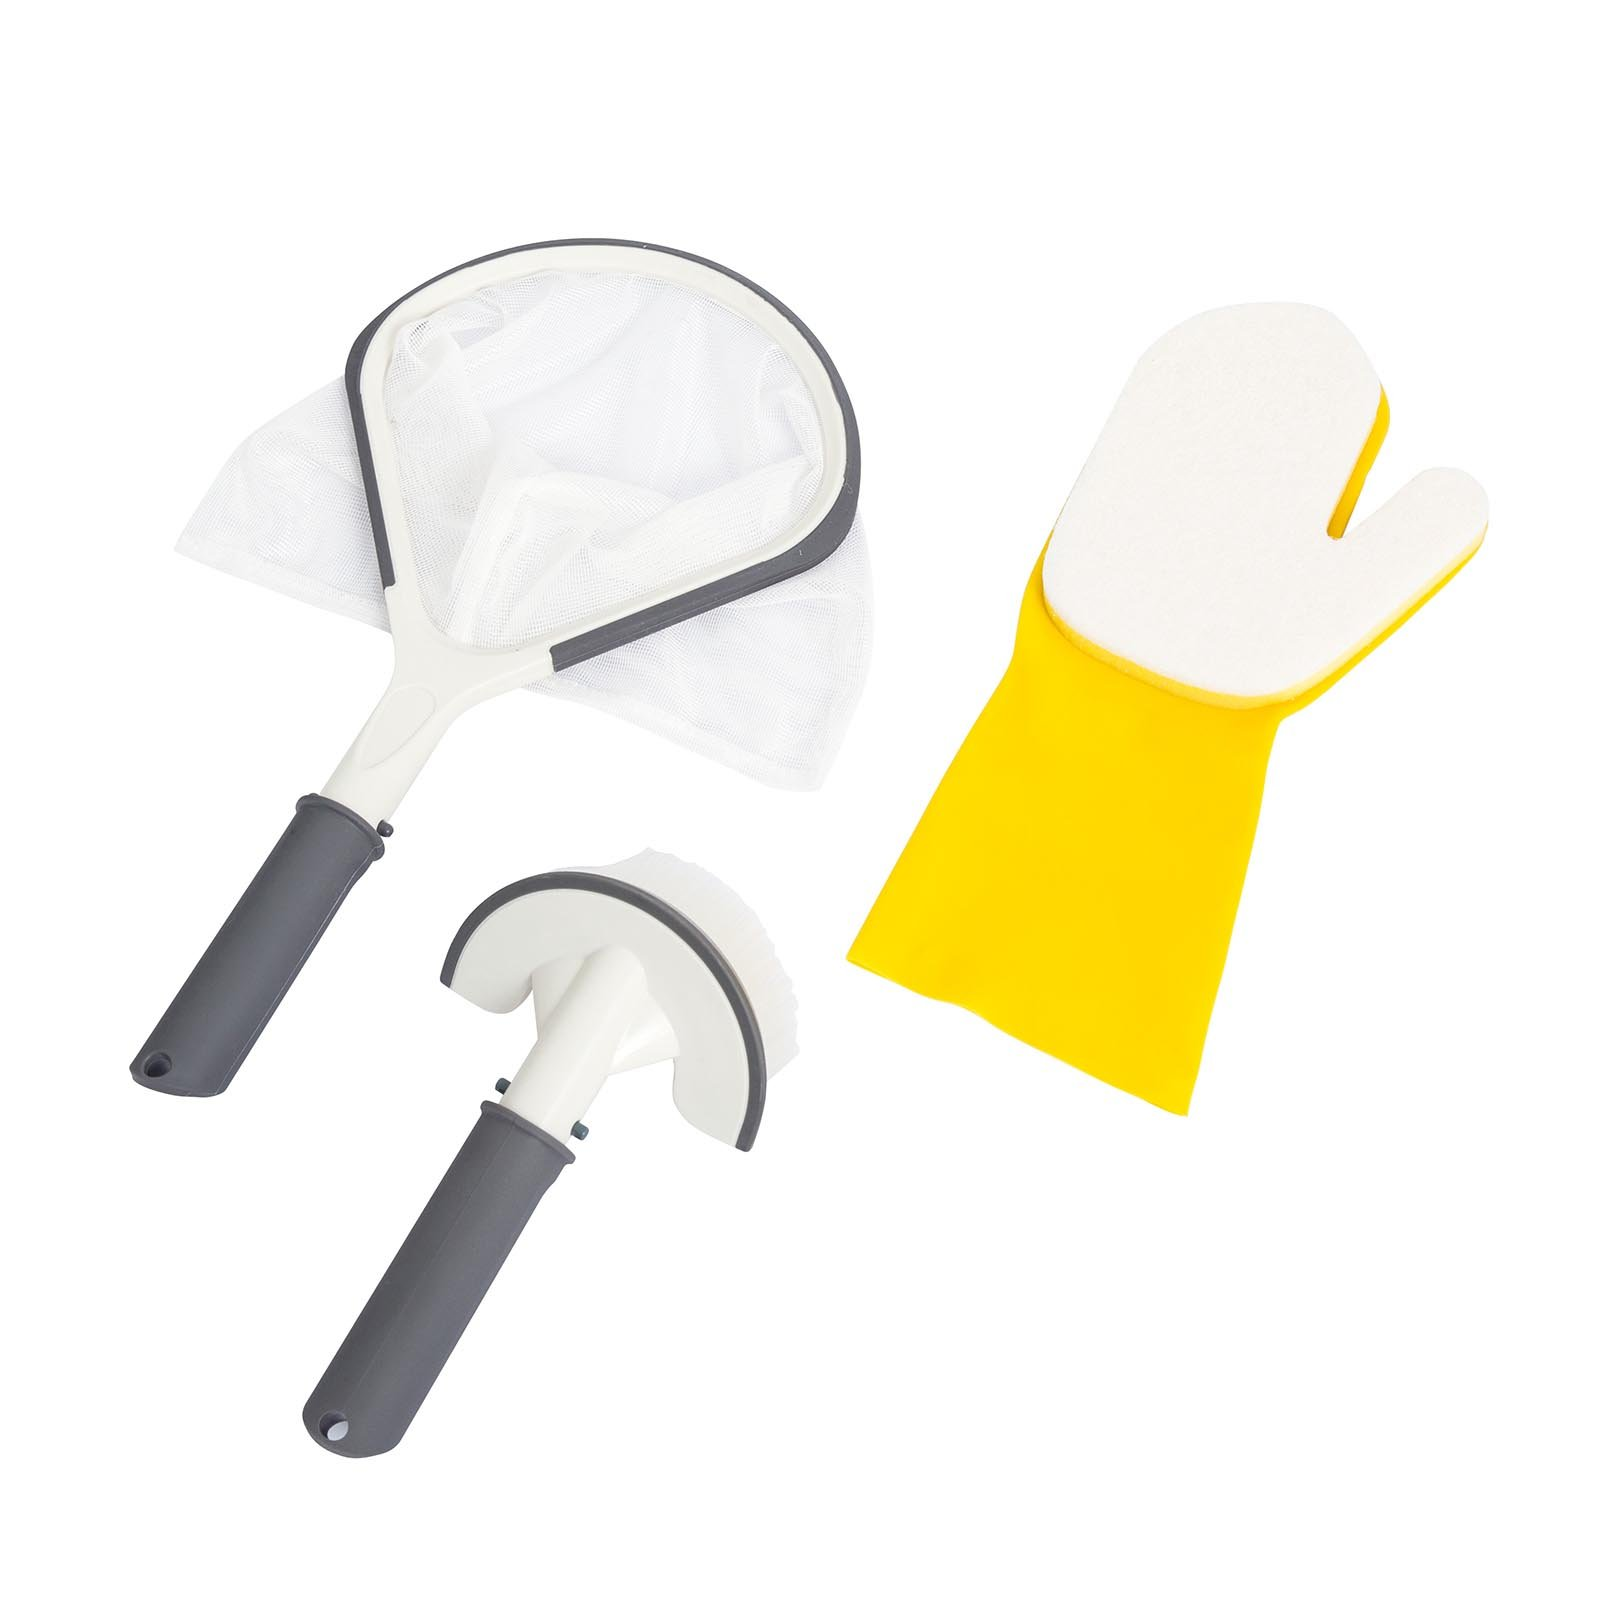 Bestway Lay-Z Spa SaluSpa Hot Tub All-in-One 3-Piece Cleaning Tool Set